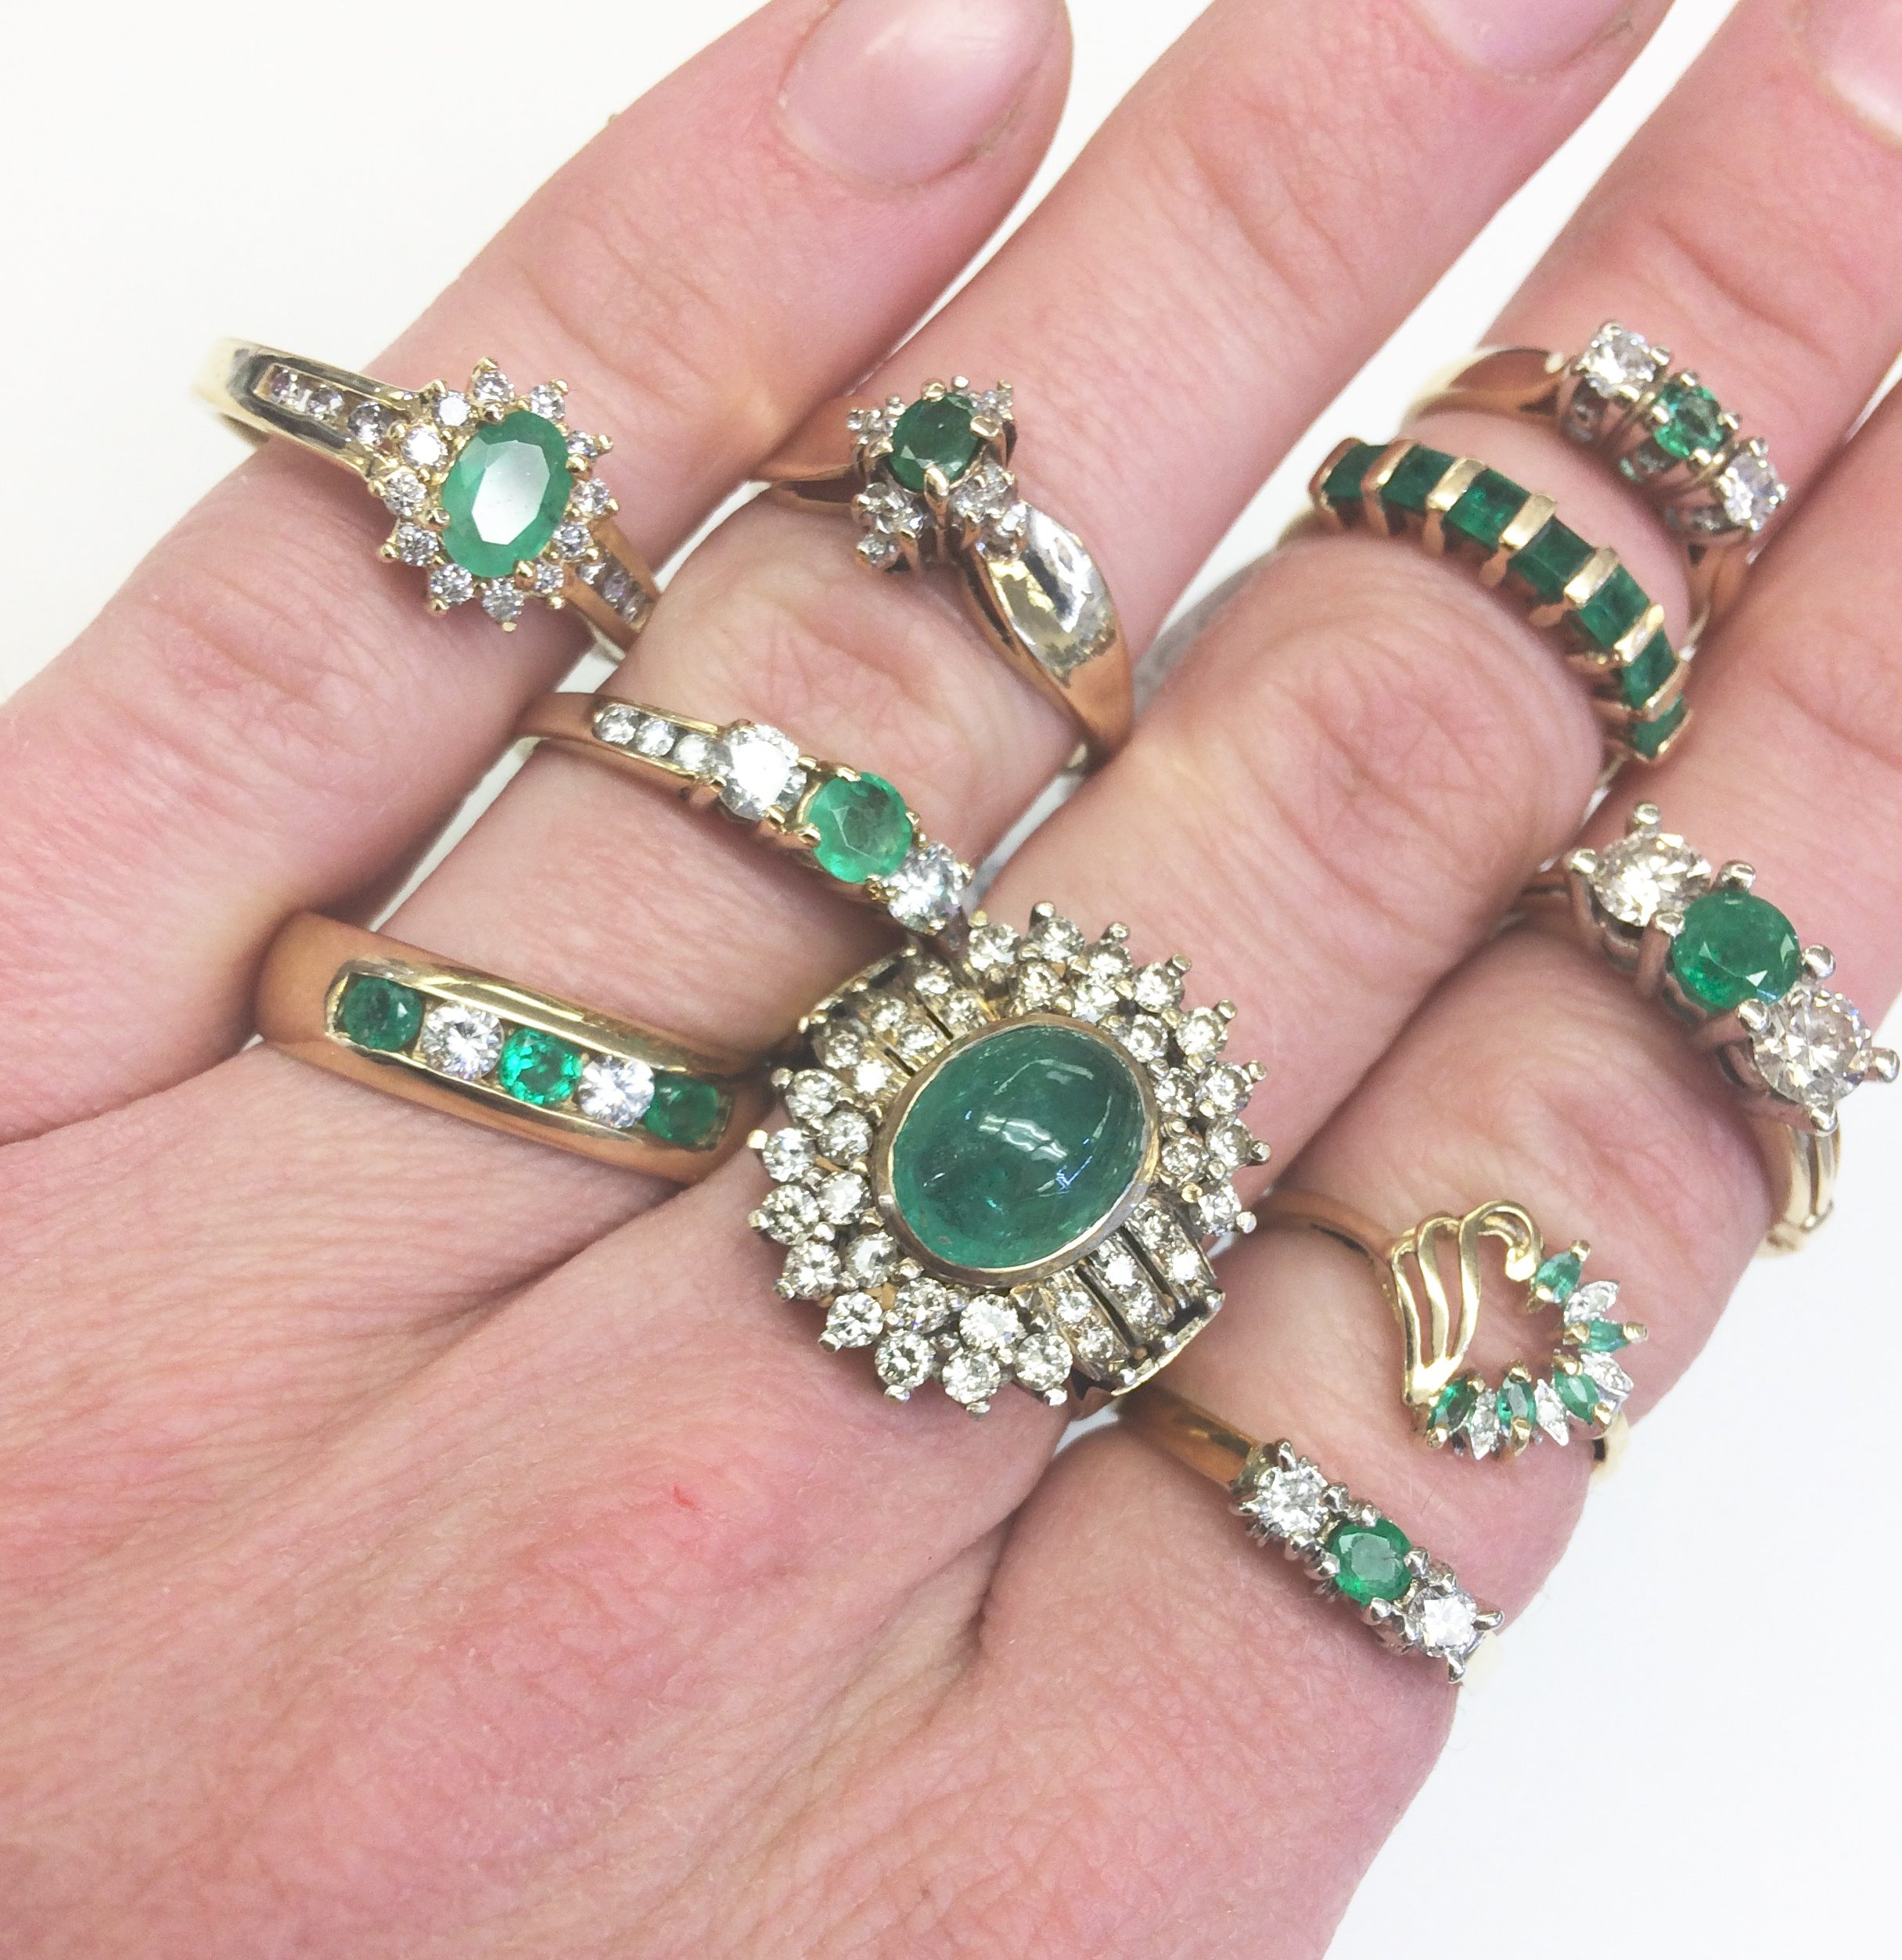 dubrul emeral maja i emerald jewelry burst rings o ring r products